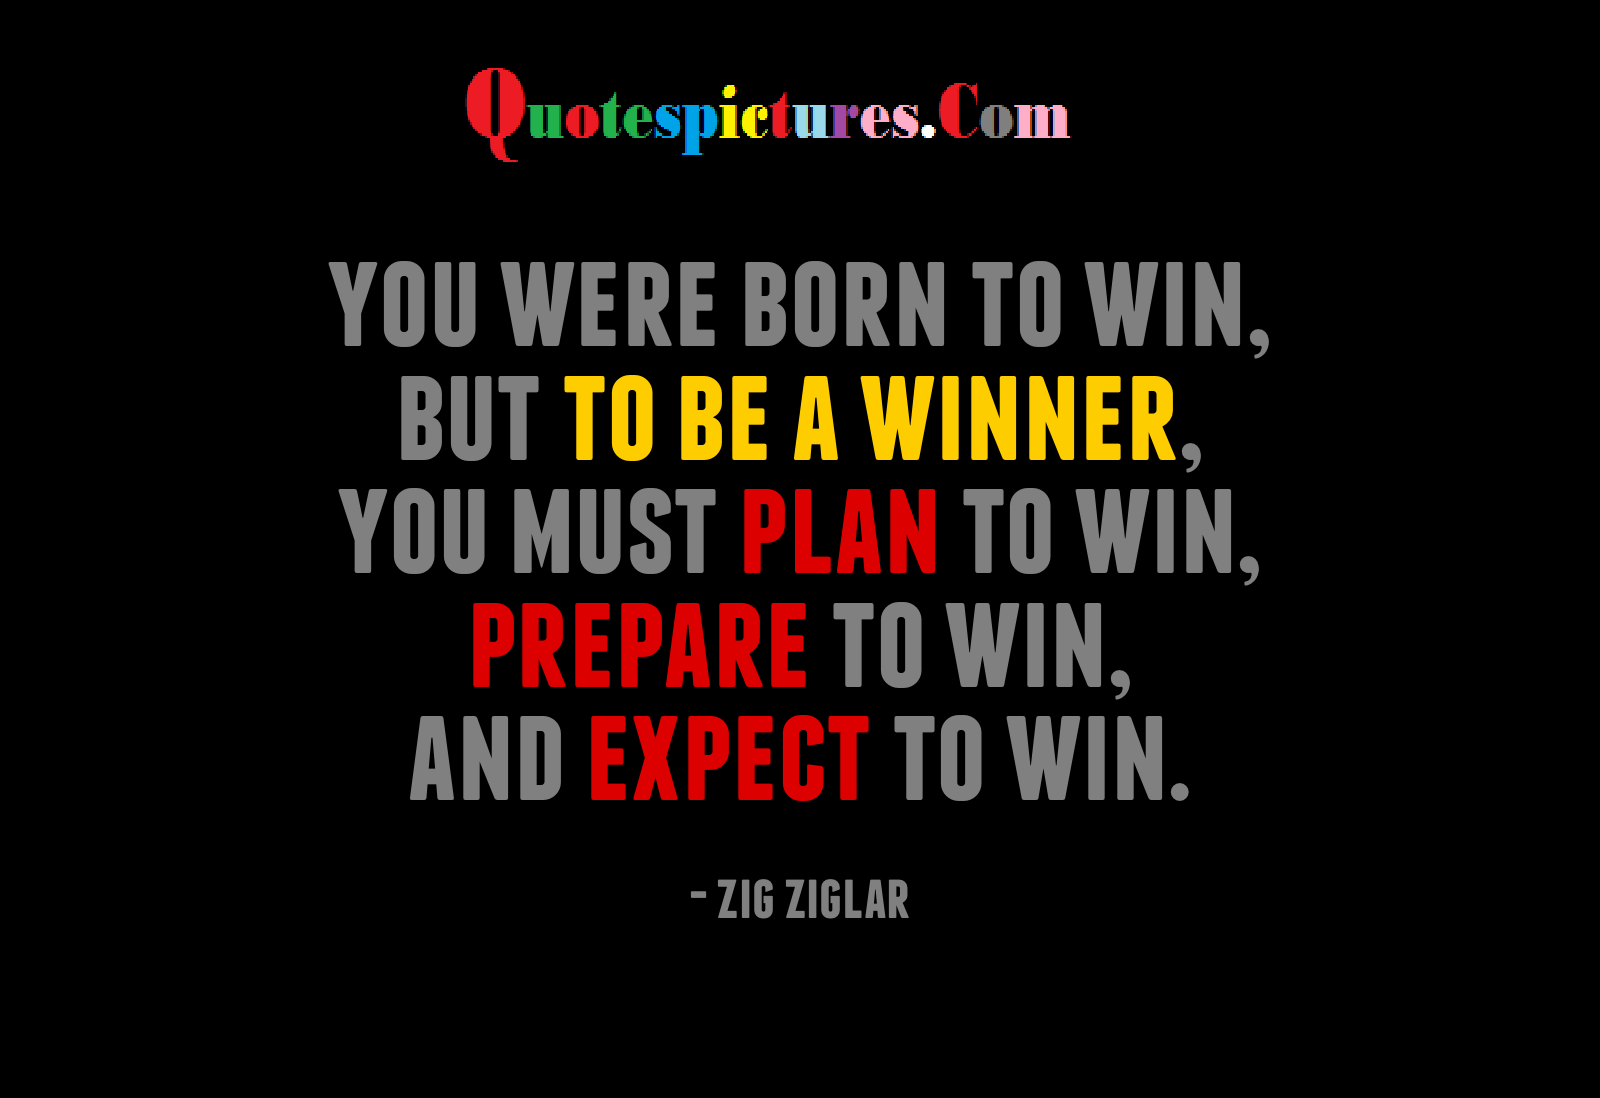 Buisness Quotes - You Were Born To Win But To Be A Winner By Zig Zigler